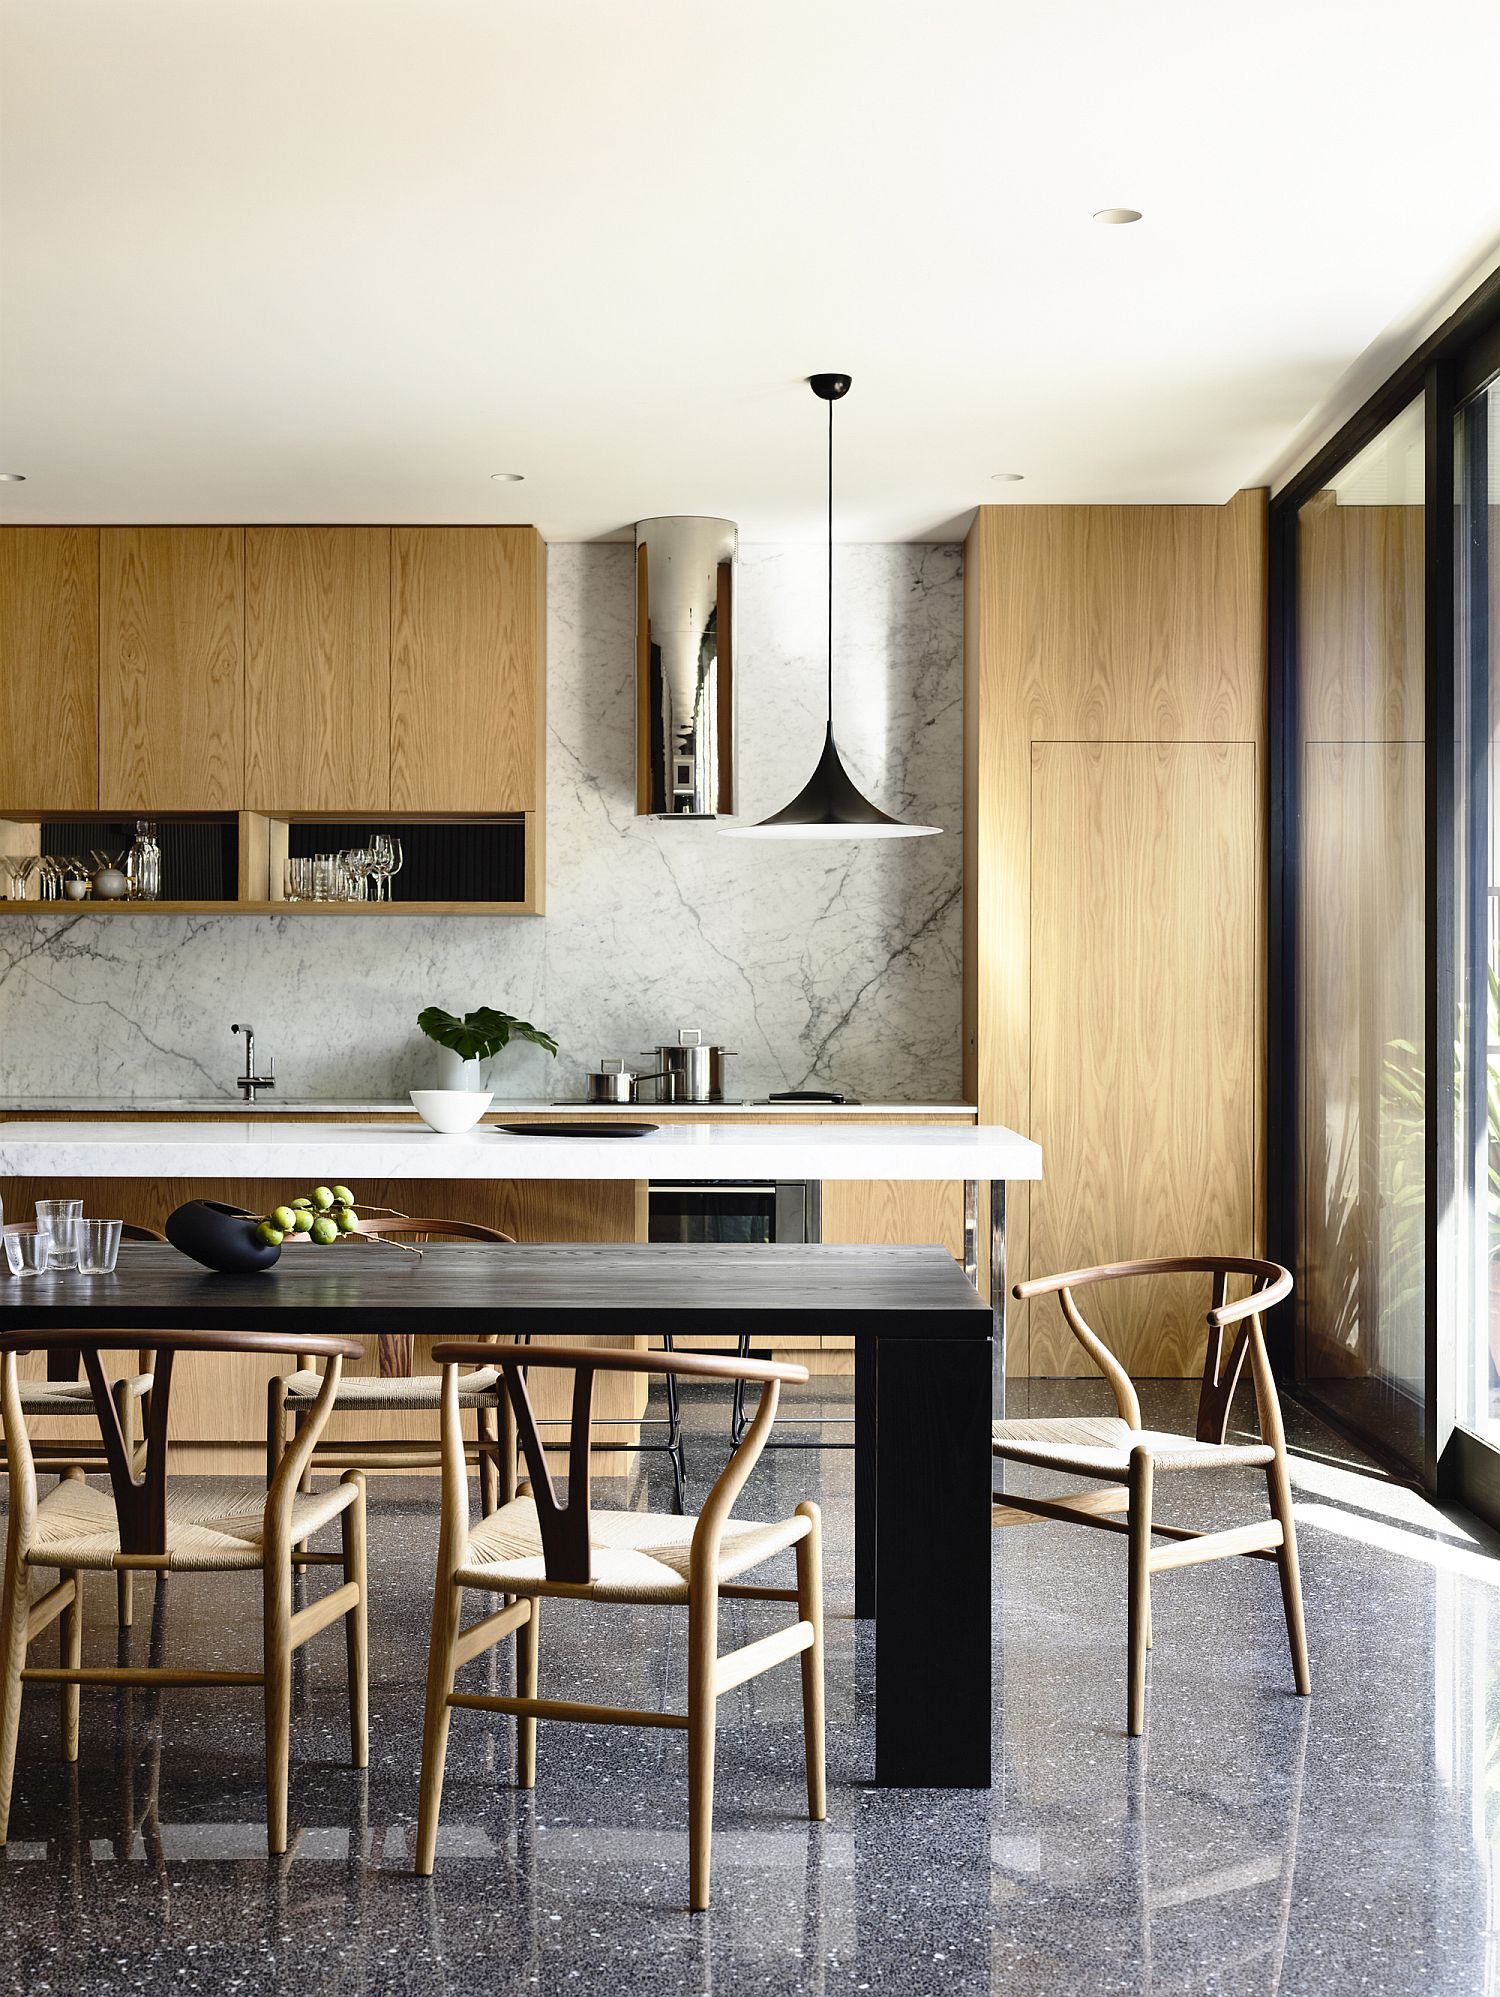 Contemporary kitchen with marble backsplash and wooden cabinets